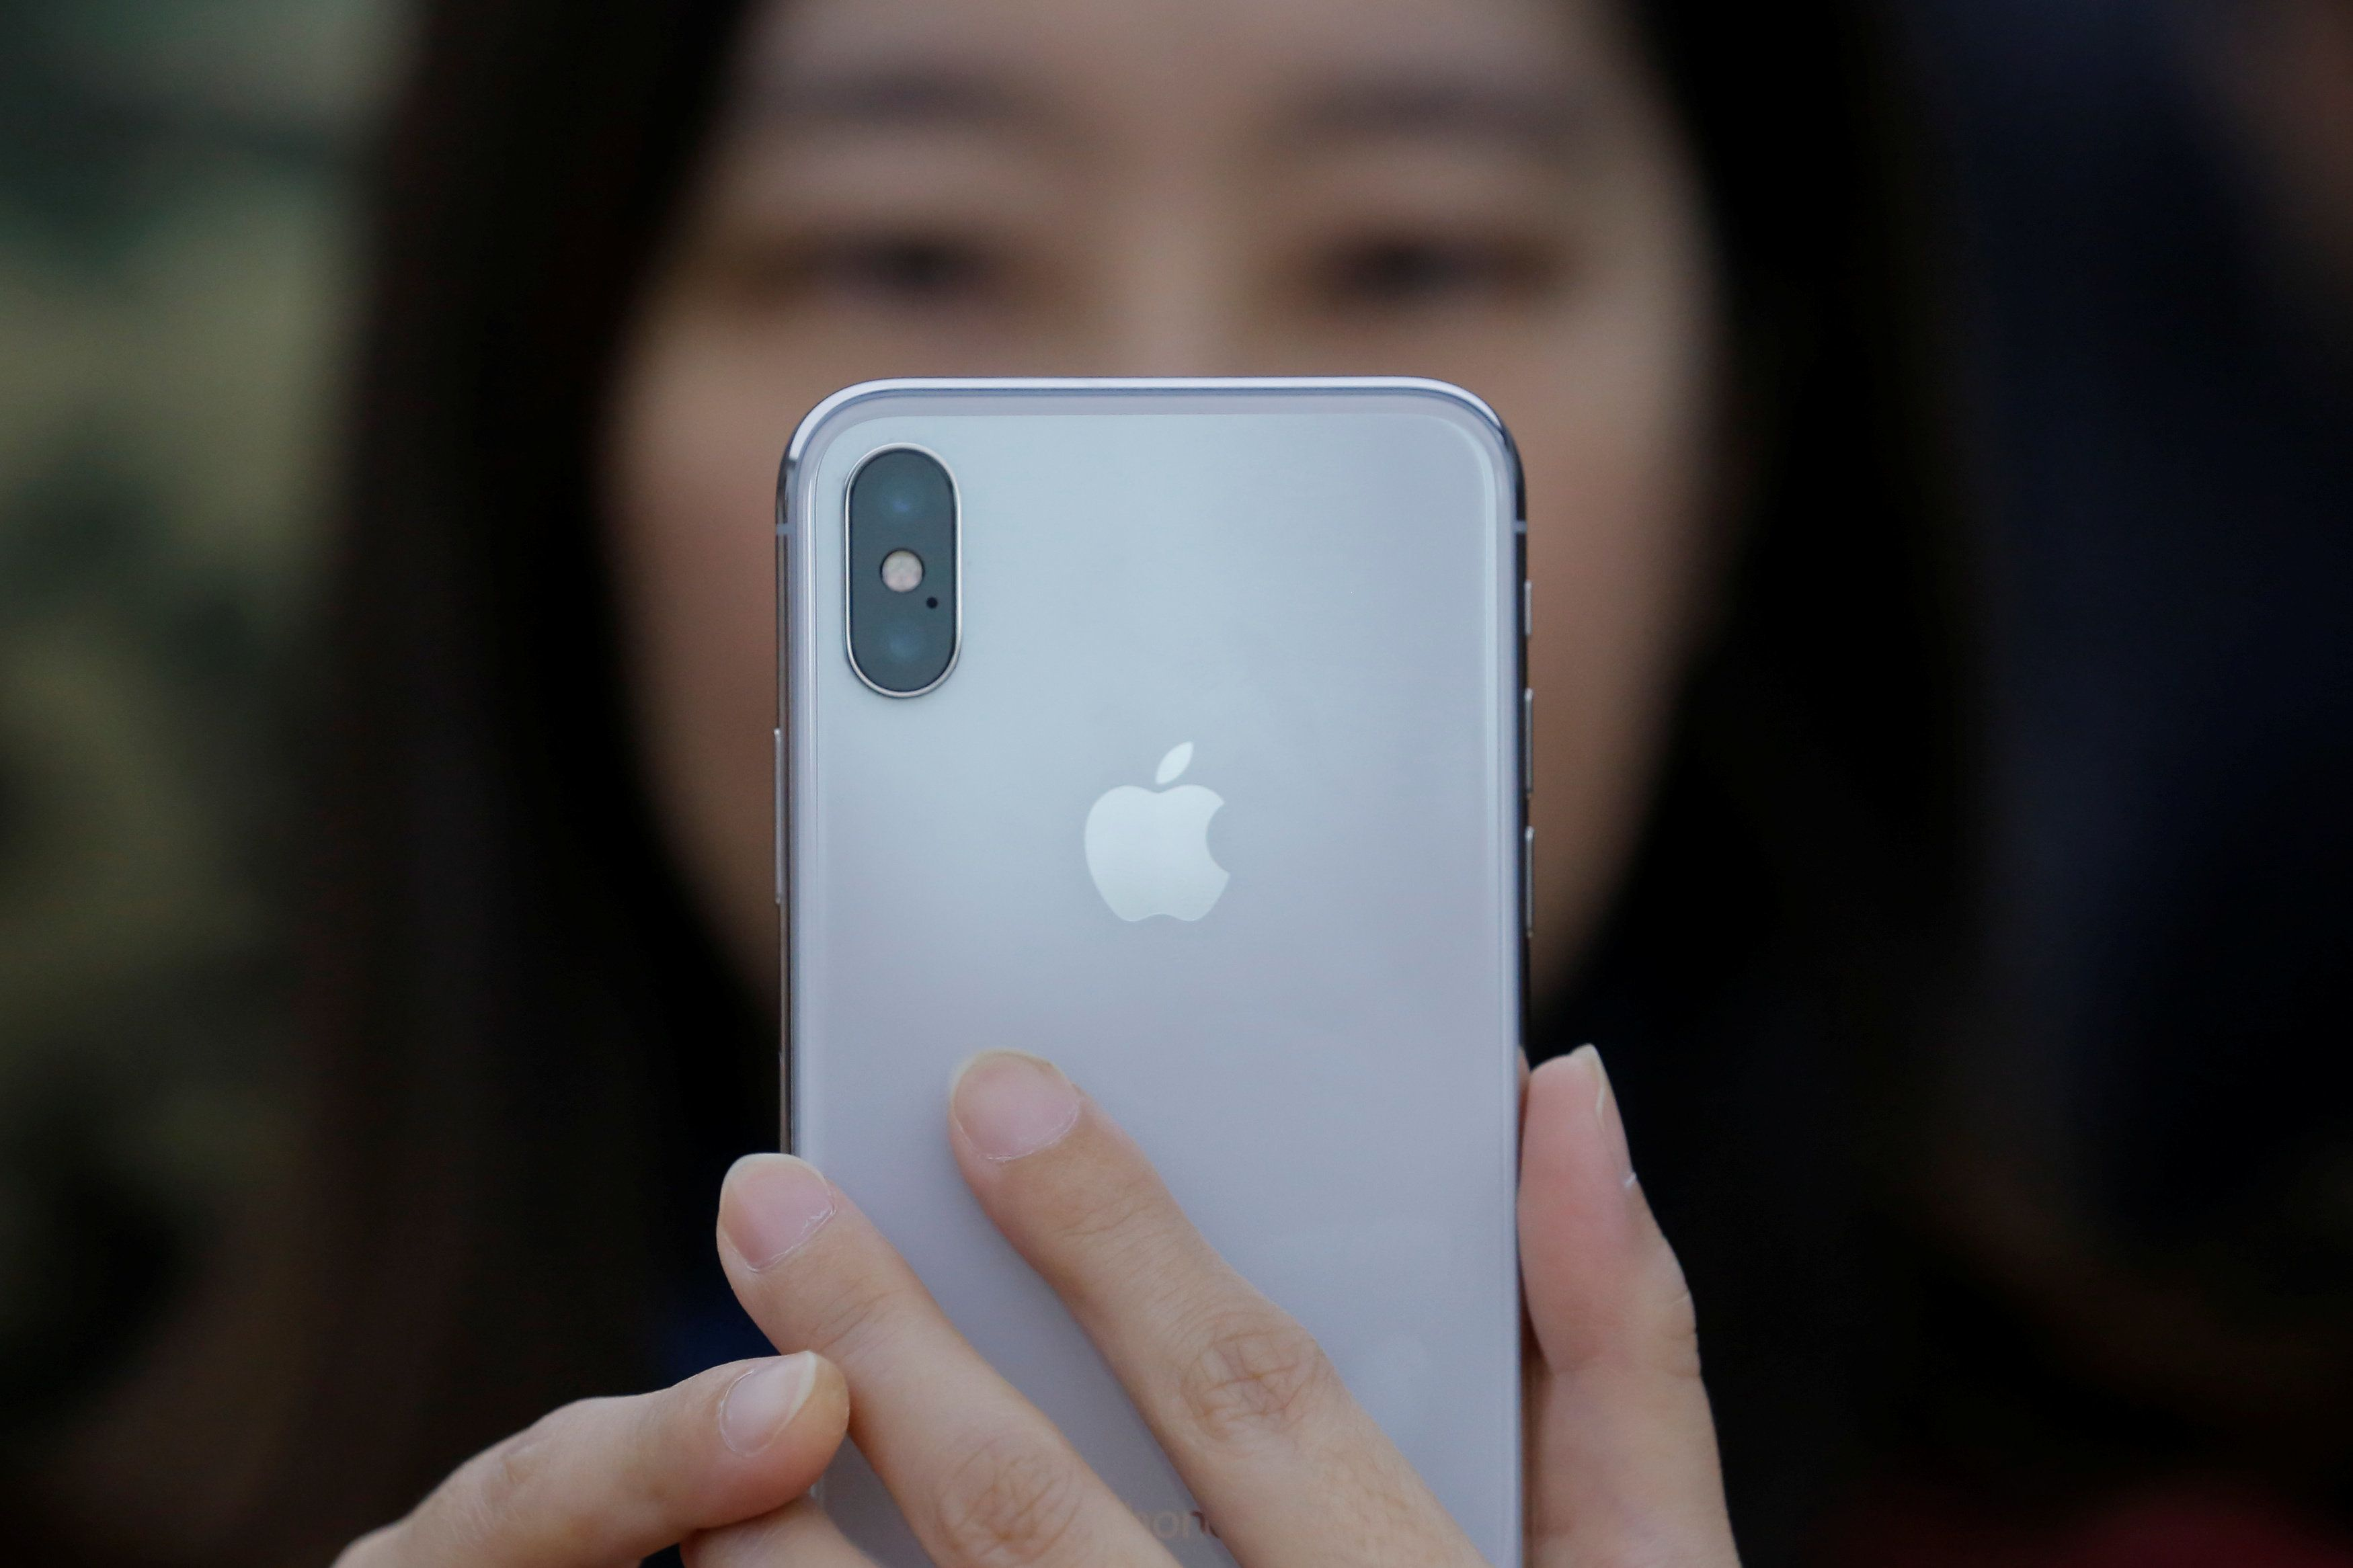 The First Reviews Of The iPhone X Are In, Here's What They're